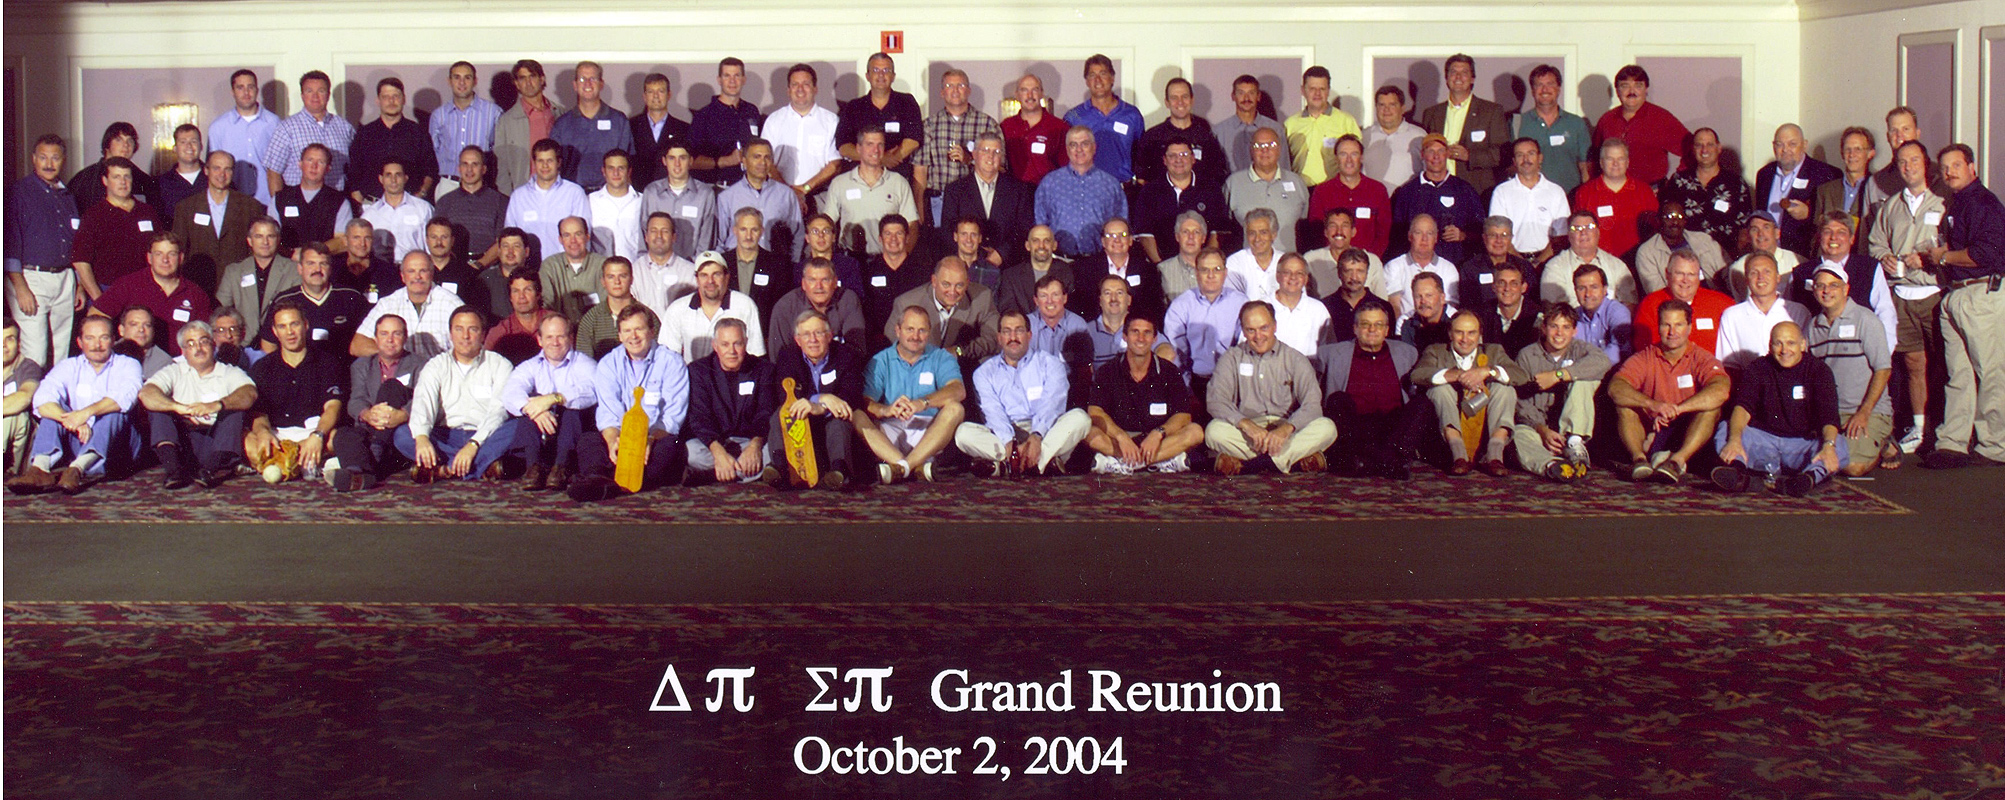 reunion-group.jpg